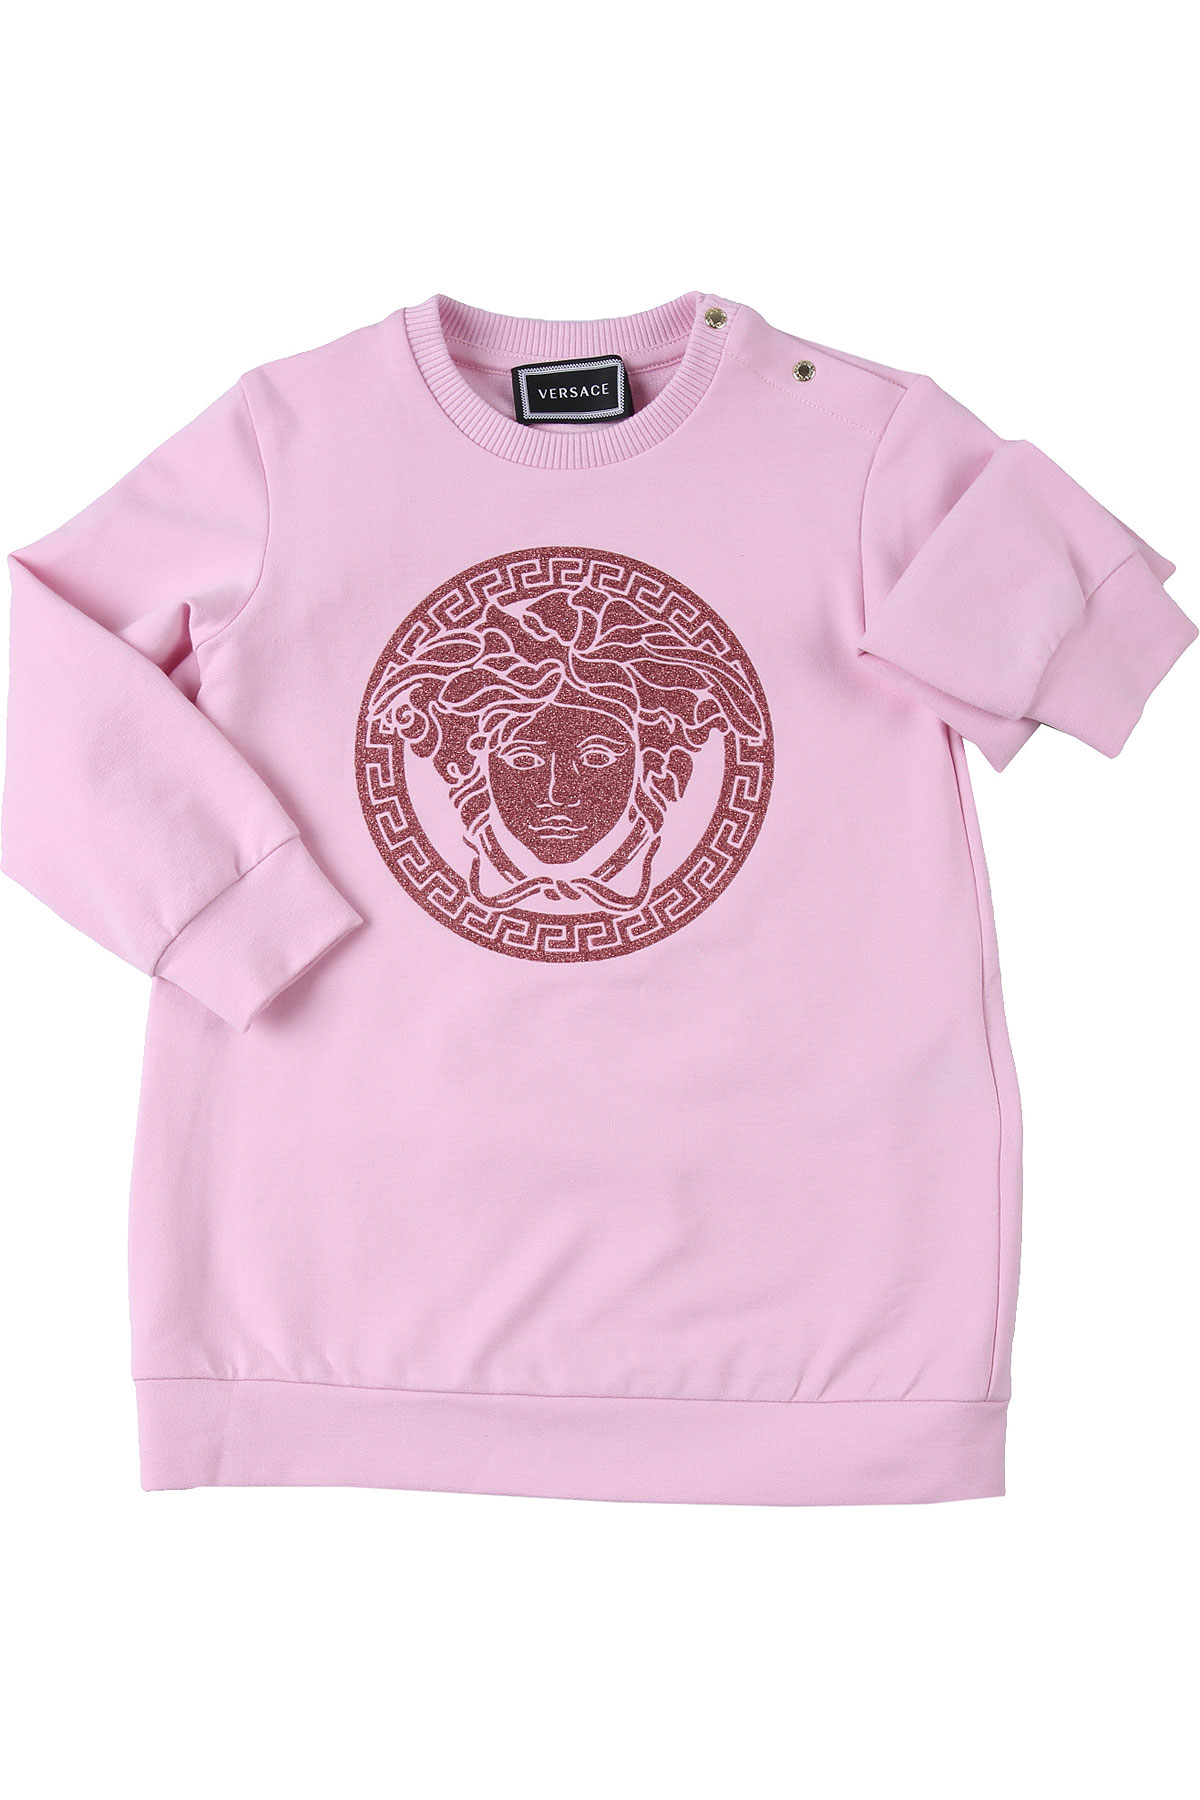 Versace Baby Dress for Girls On Sale, Pink, Cotton, 2019, 12M 18M 24M 2Y 3Y